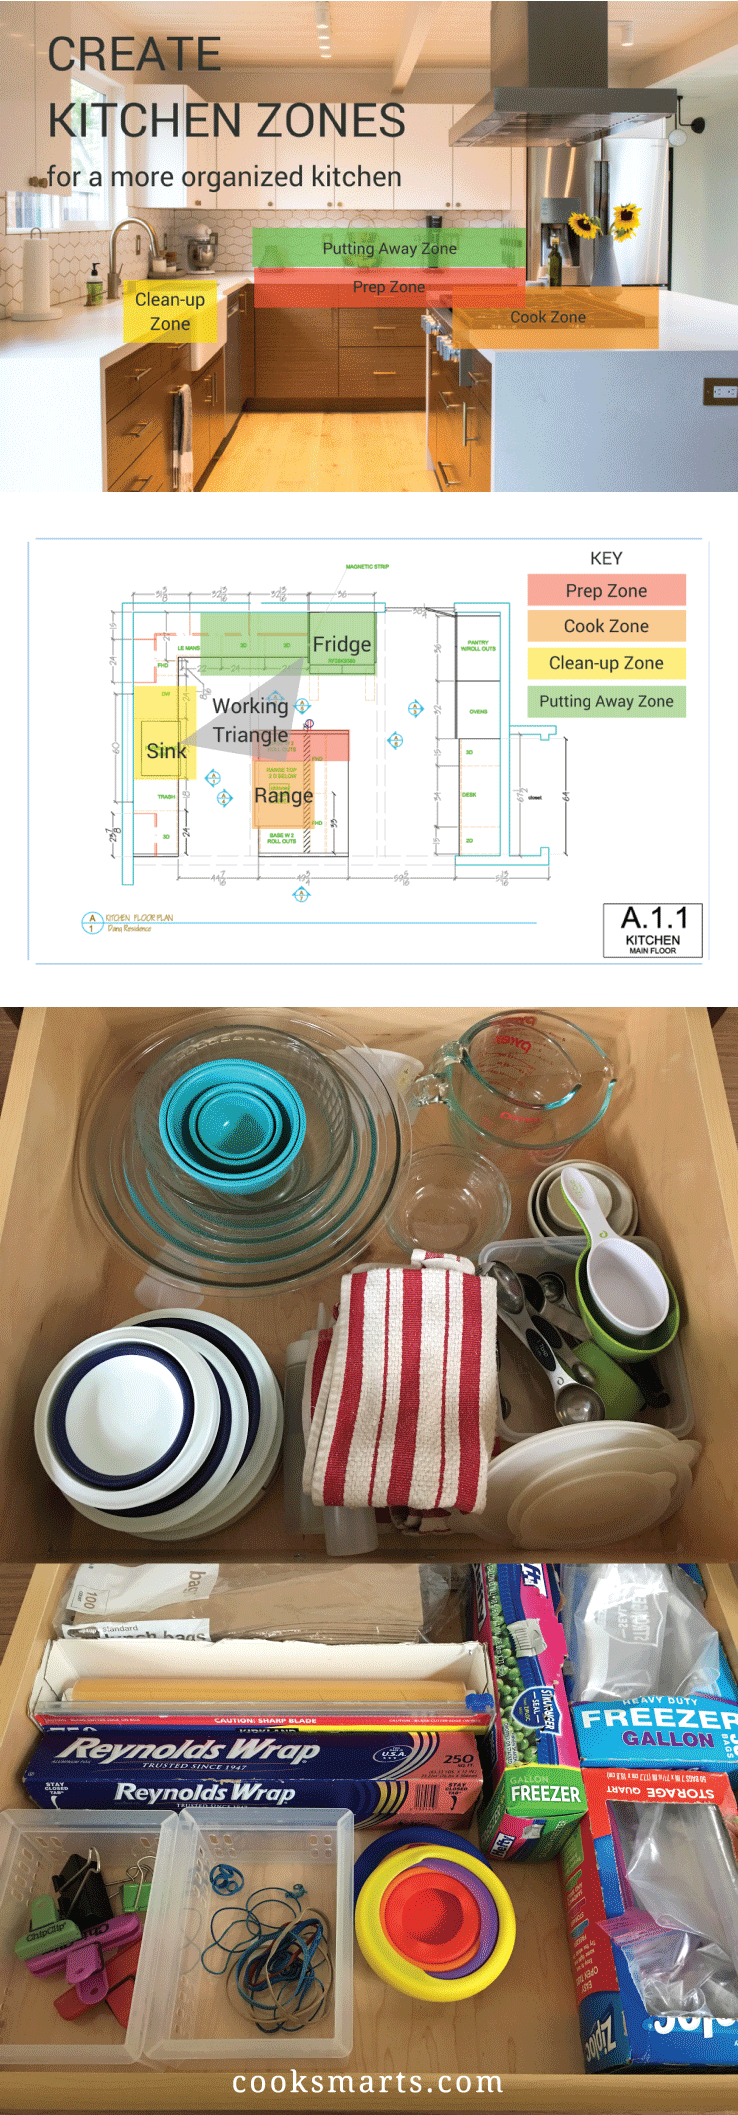 Creating Kitchen Zones for a More Organized Kitchen via @cooksmarts